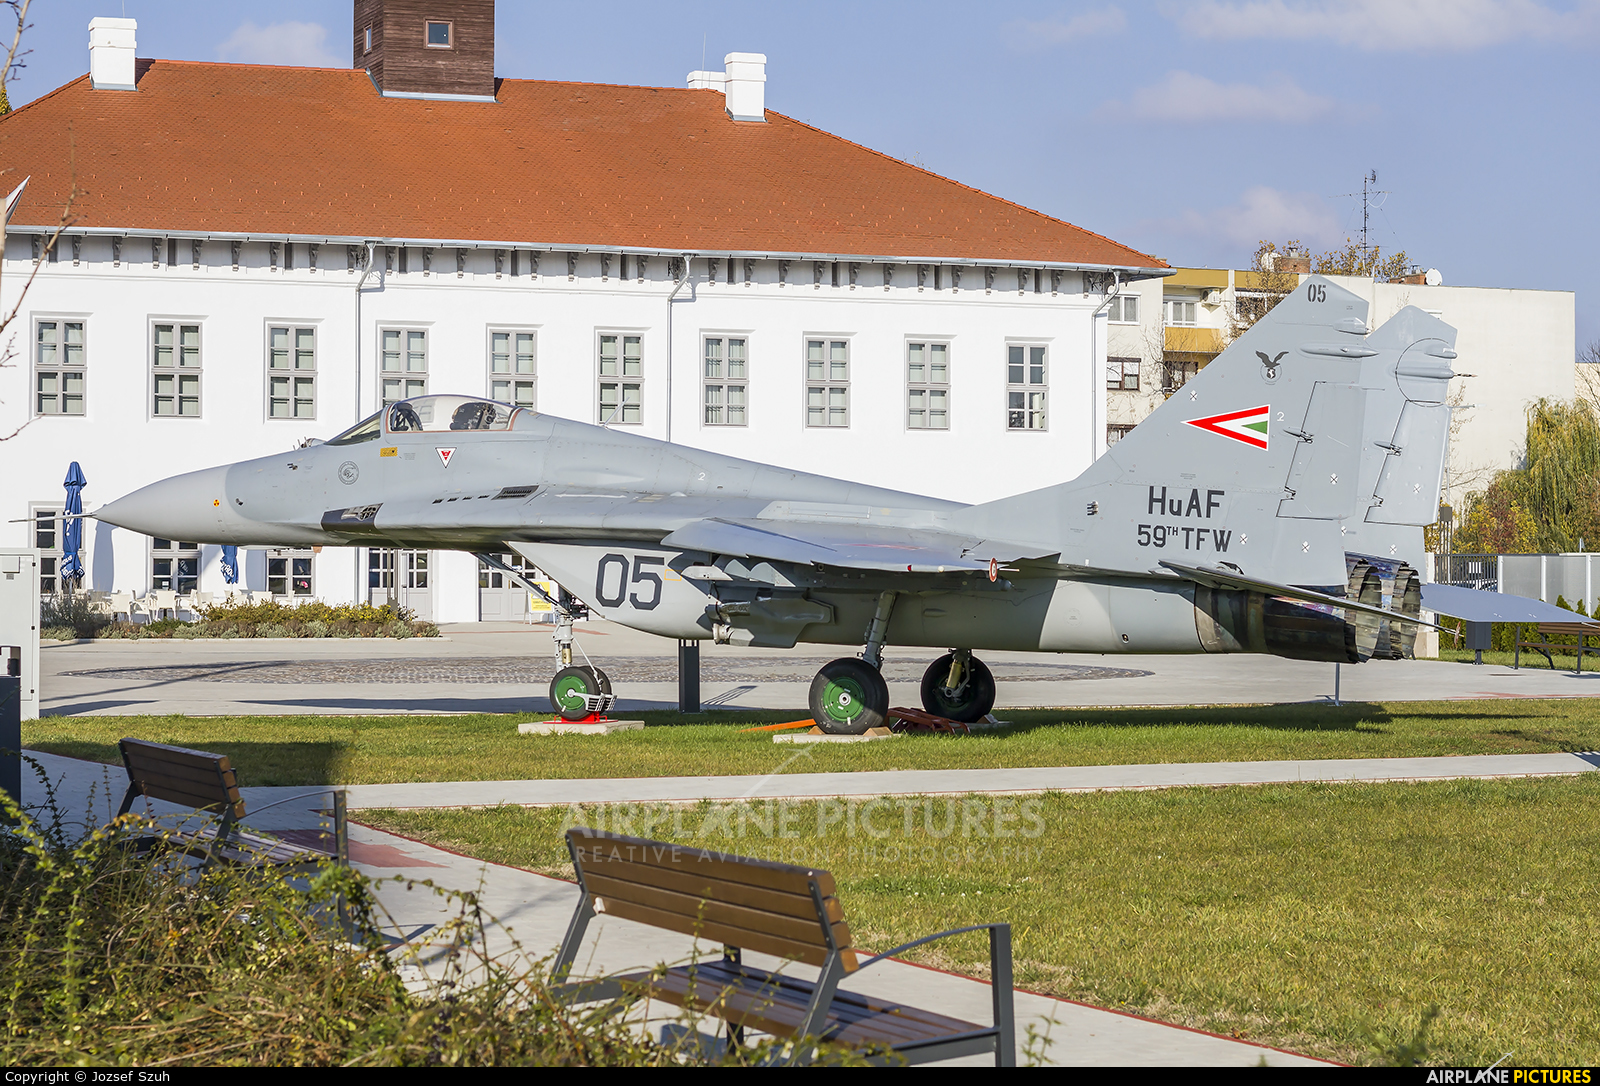 Hungary - Air Force 05 aircraft at Szolnok